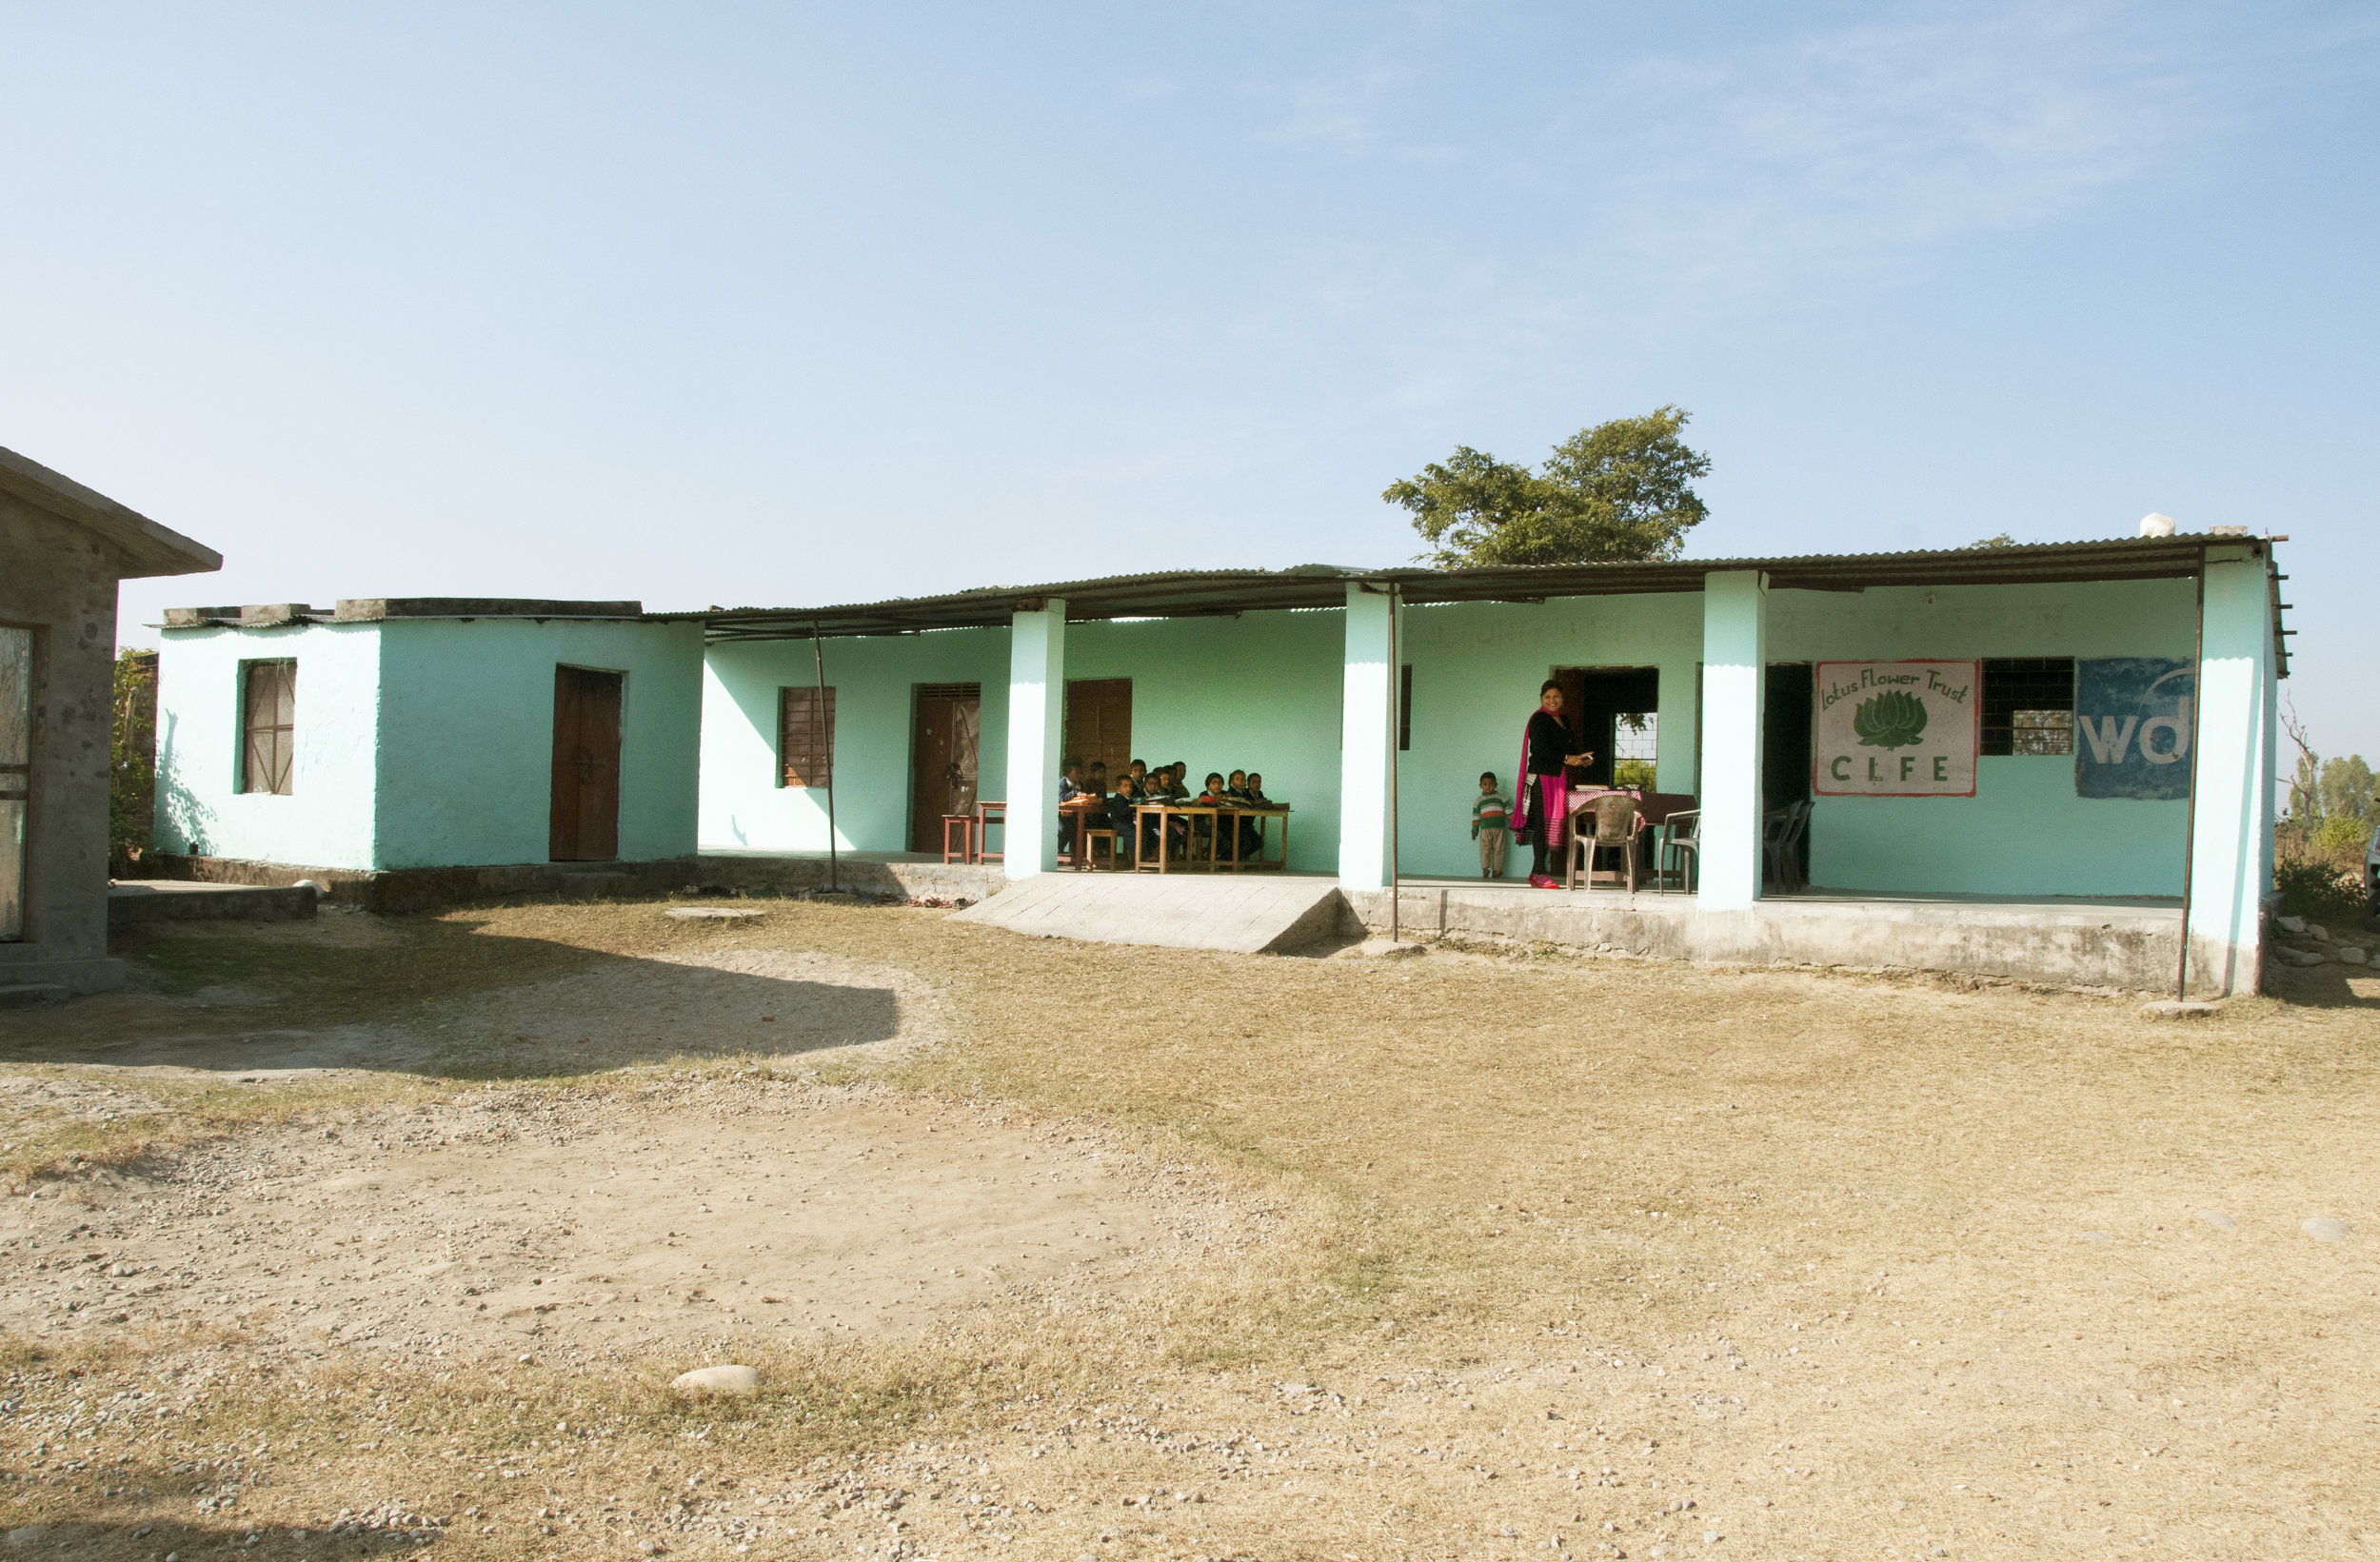 Kalu Siddhi Primary School, Uttrakhand - Funded by Duty Free News International Charity Ball